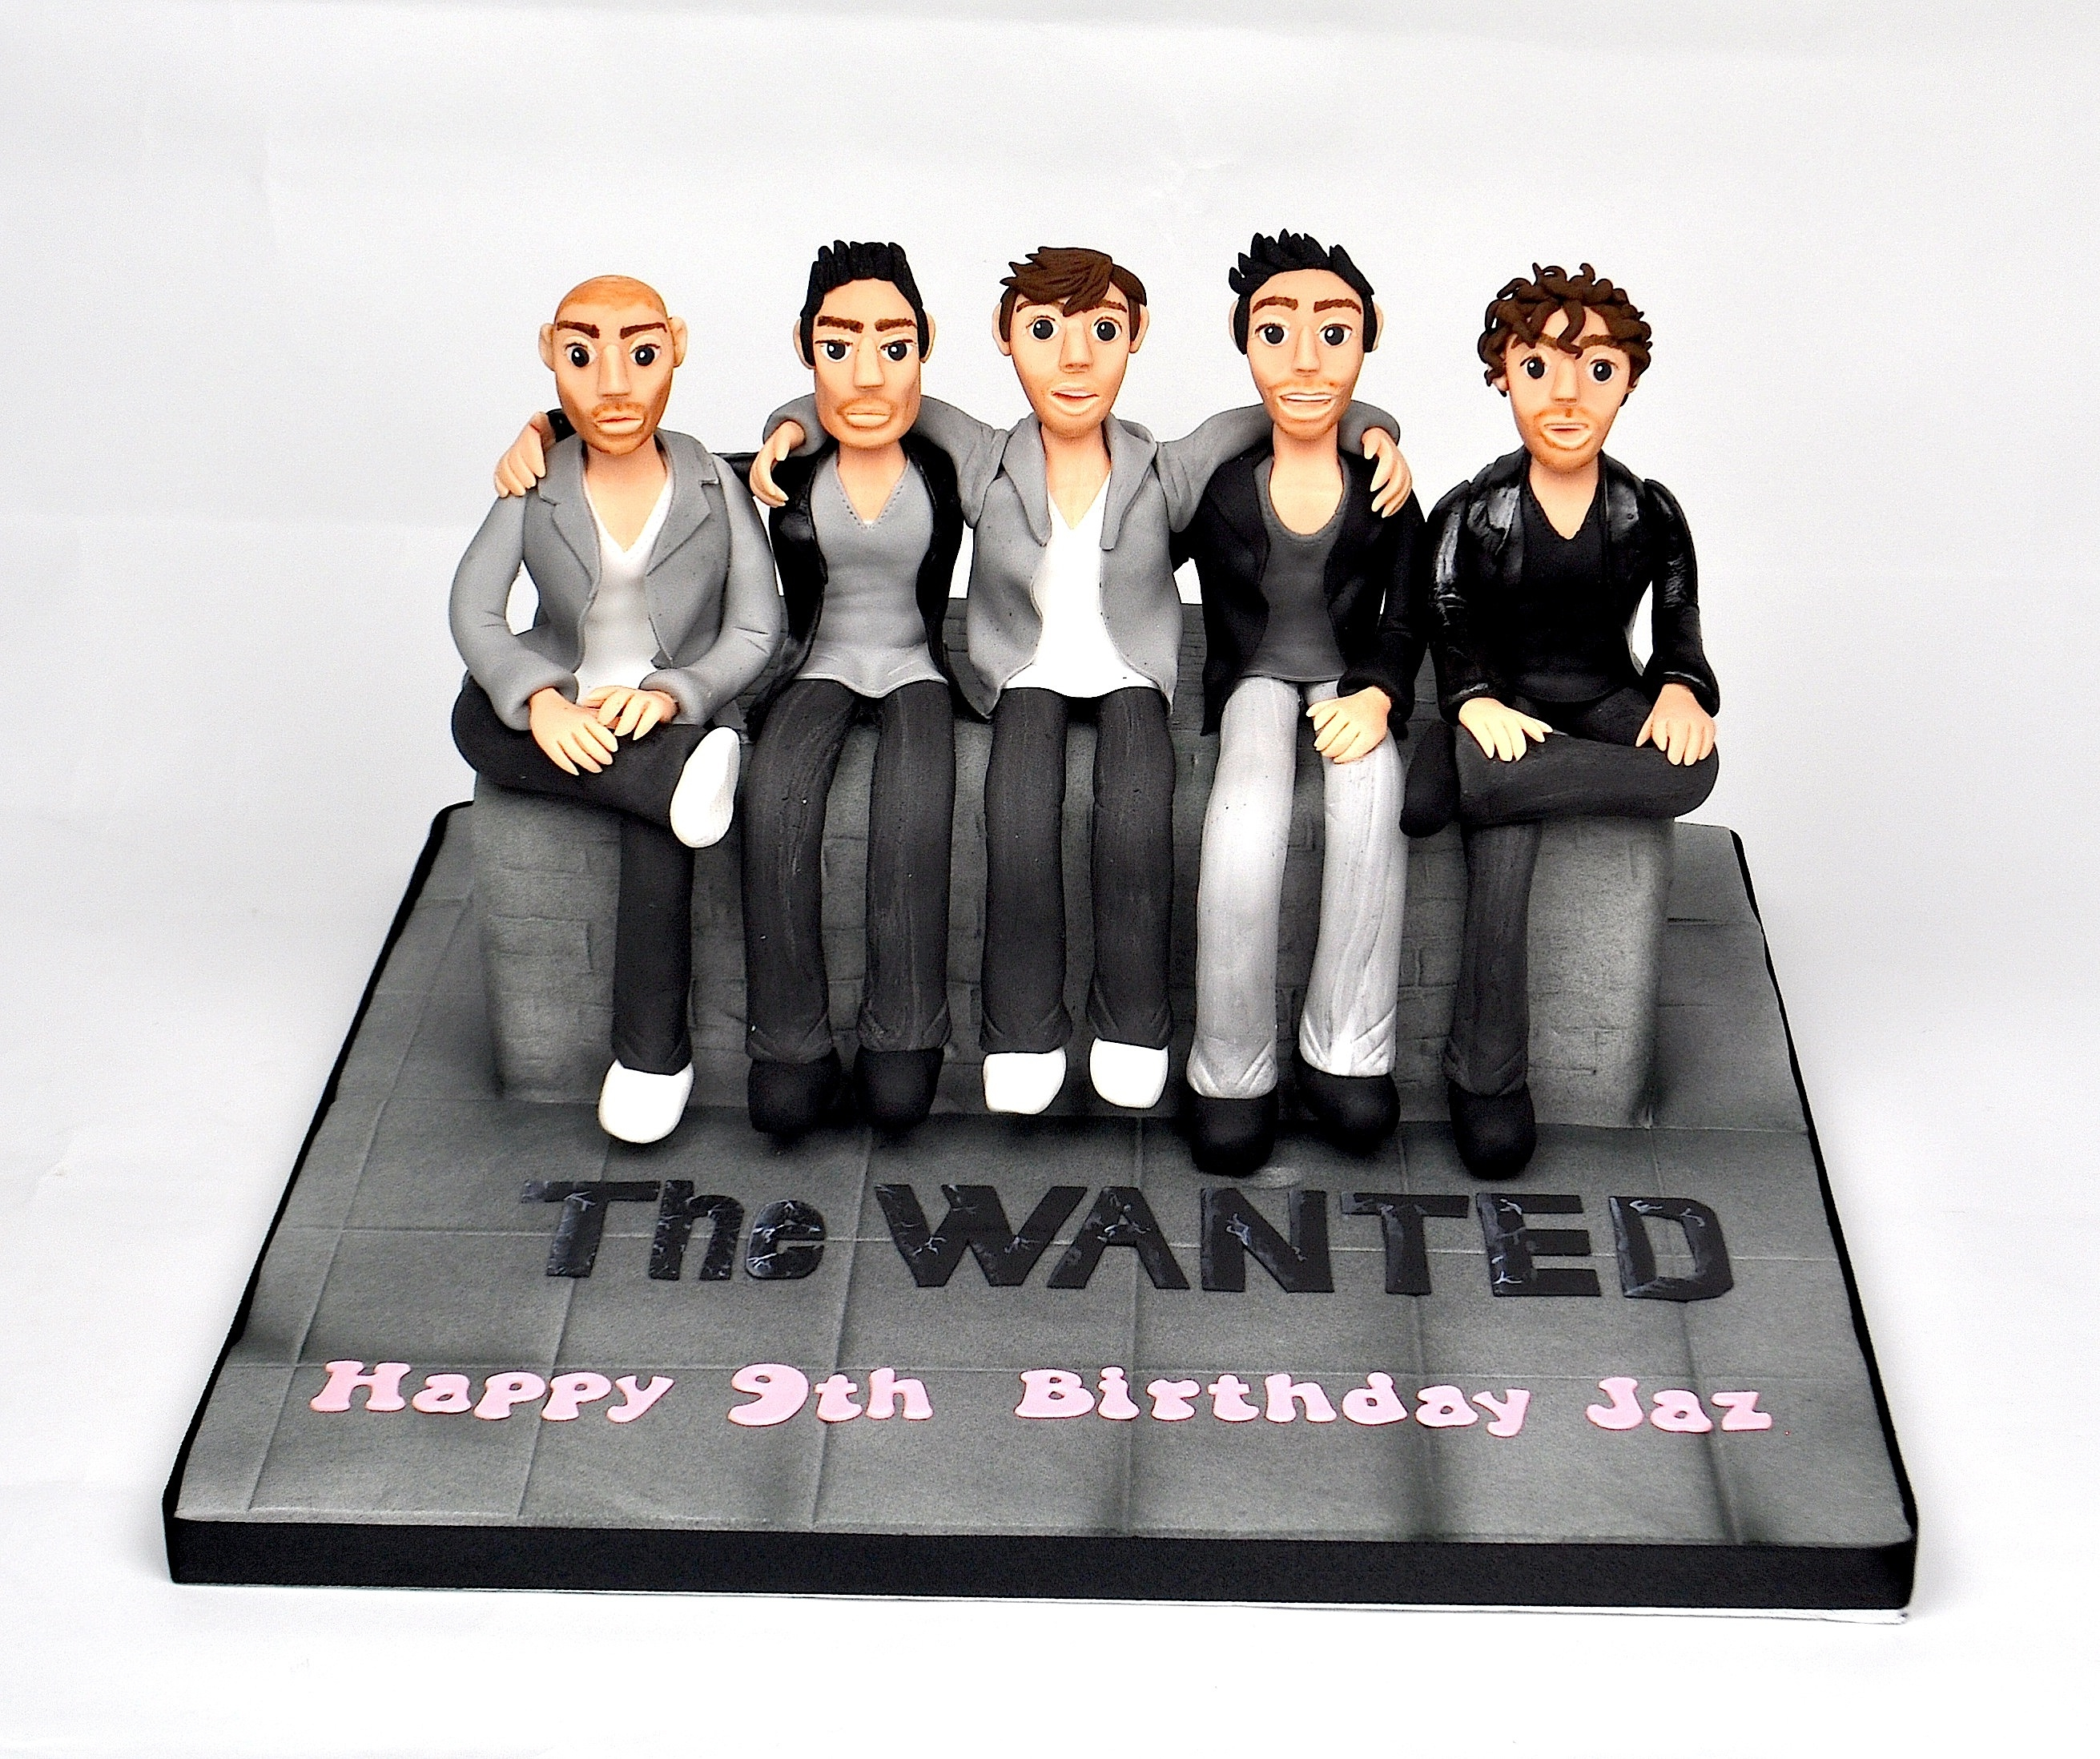 The Wanted Cake this cake was made for a little girl turning 9 who loves the boyband 'The Wanted'.